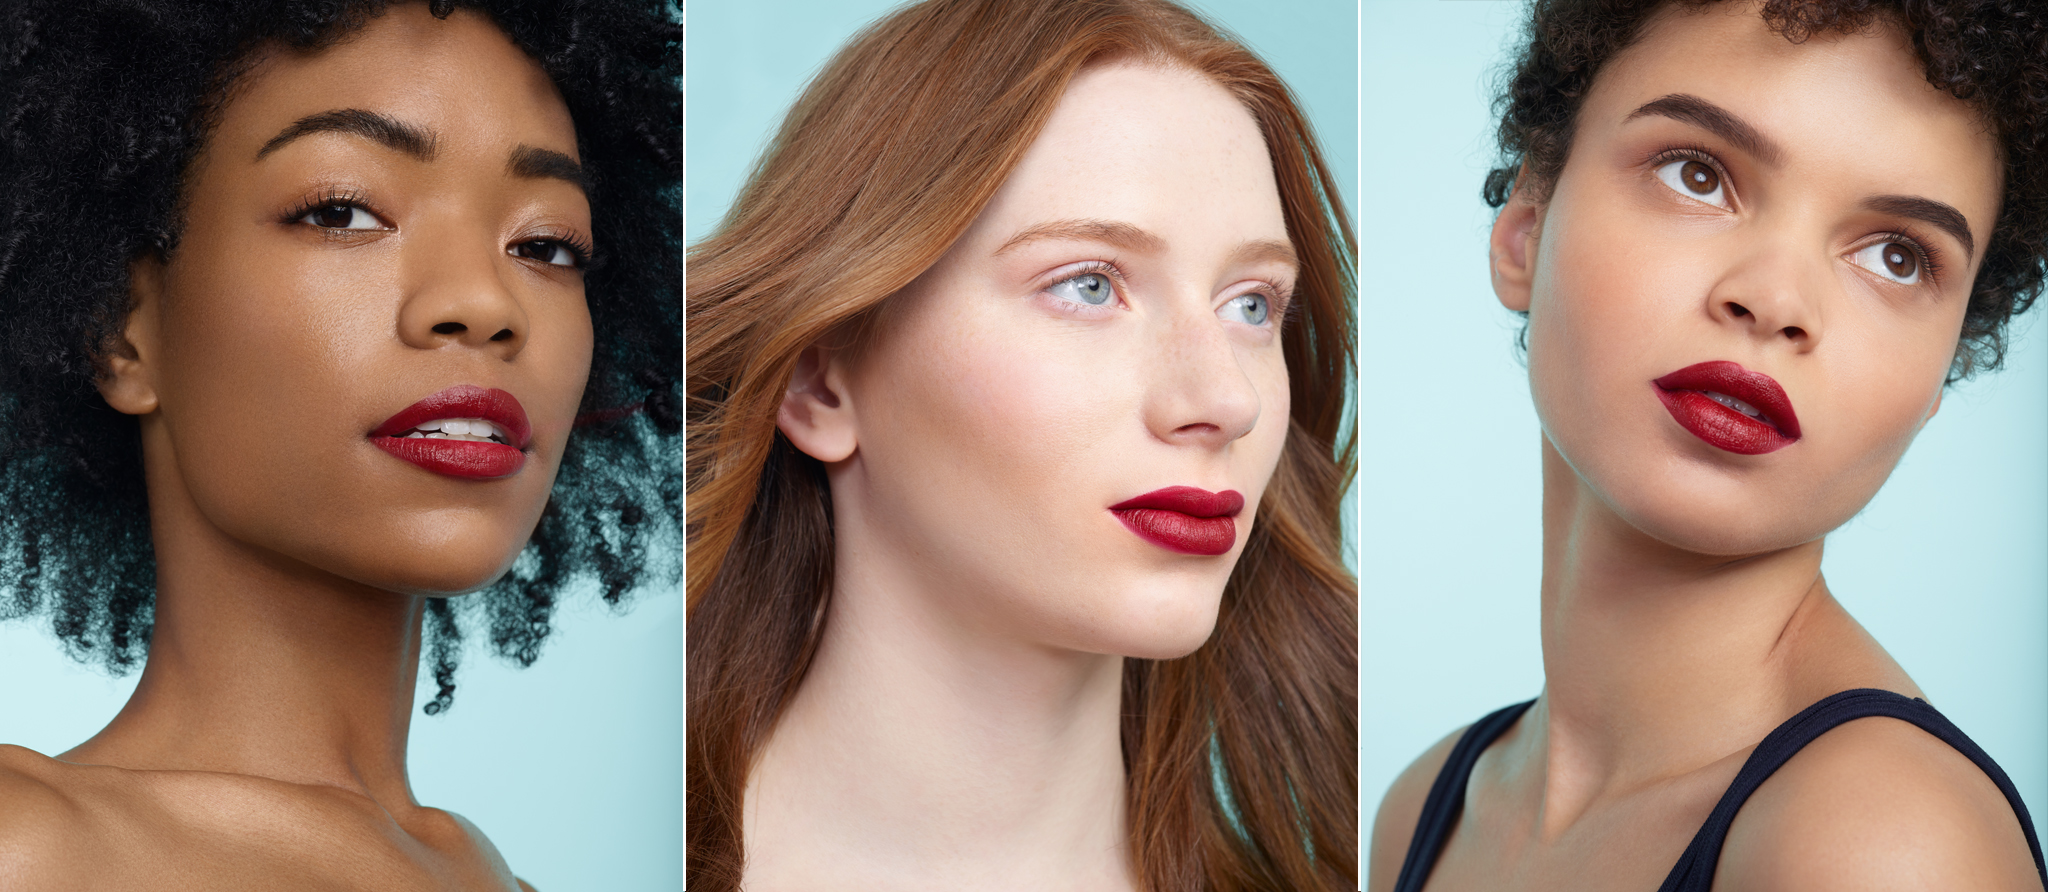 Portraits of three red lipstick shades on three diverse female models